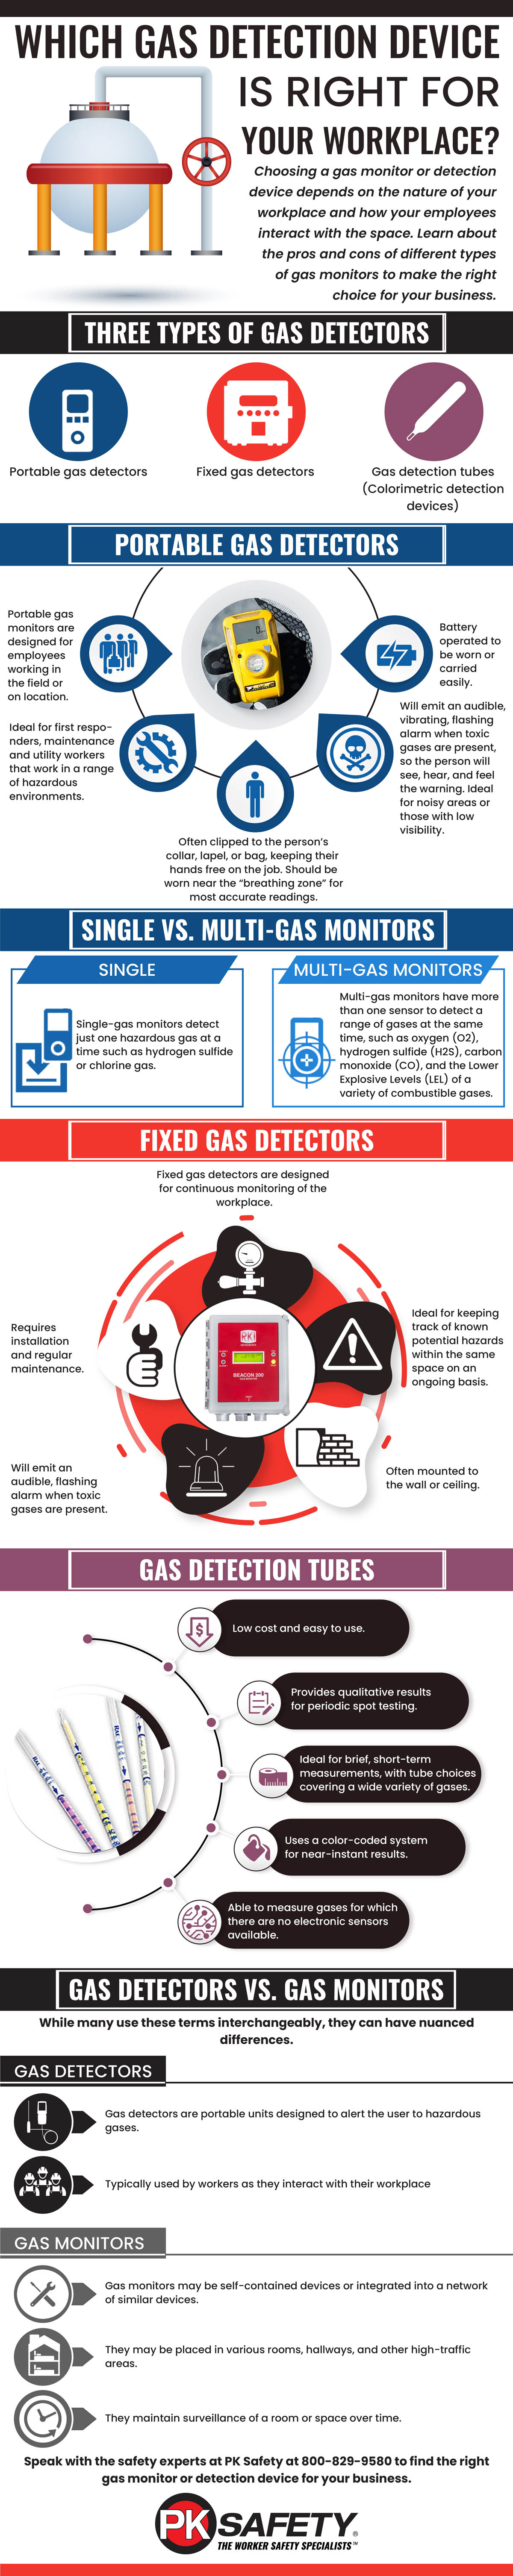 Which Gas Detection Device is Right for Your Workplace?